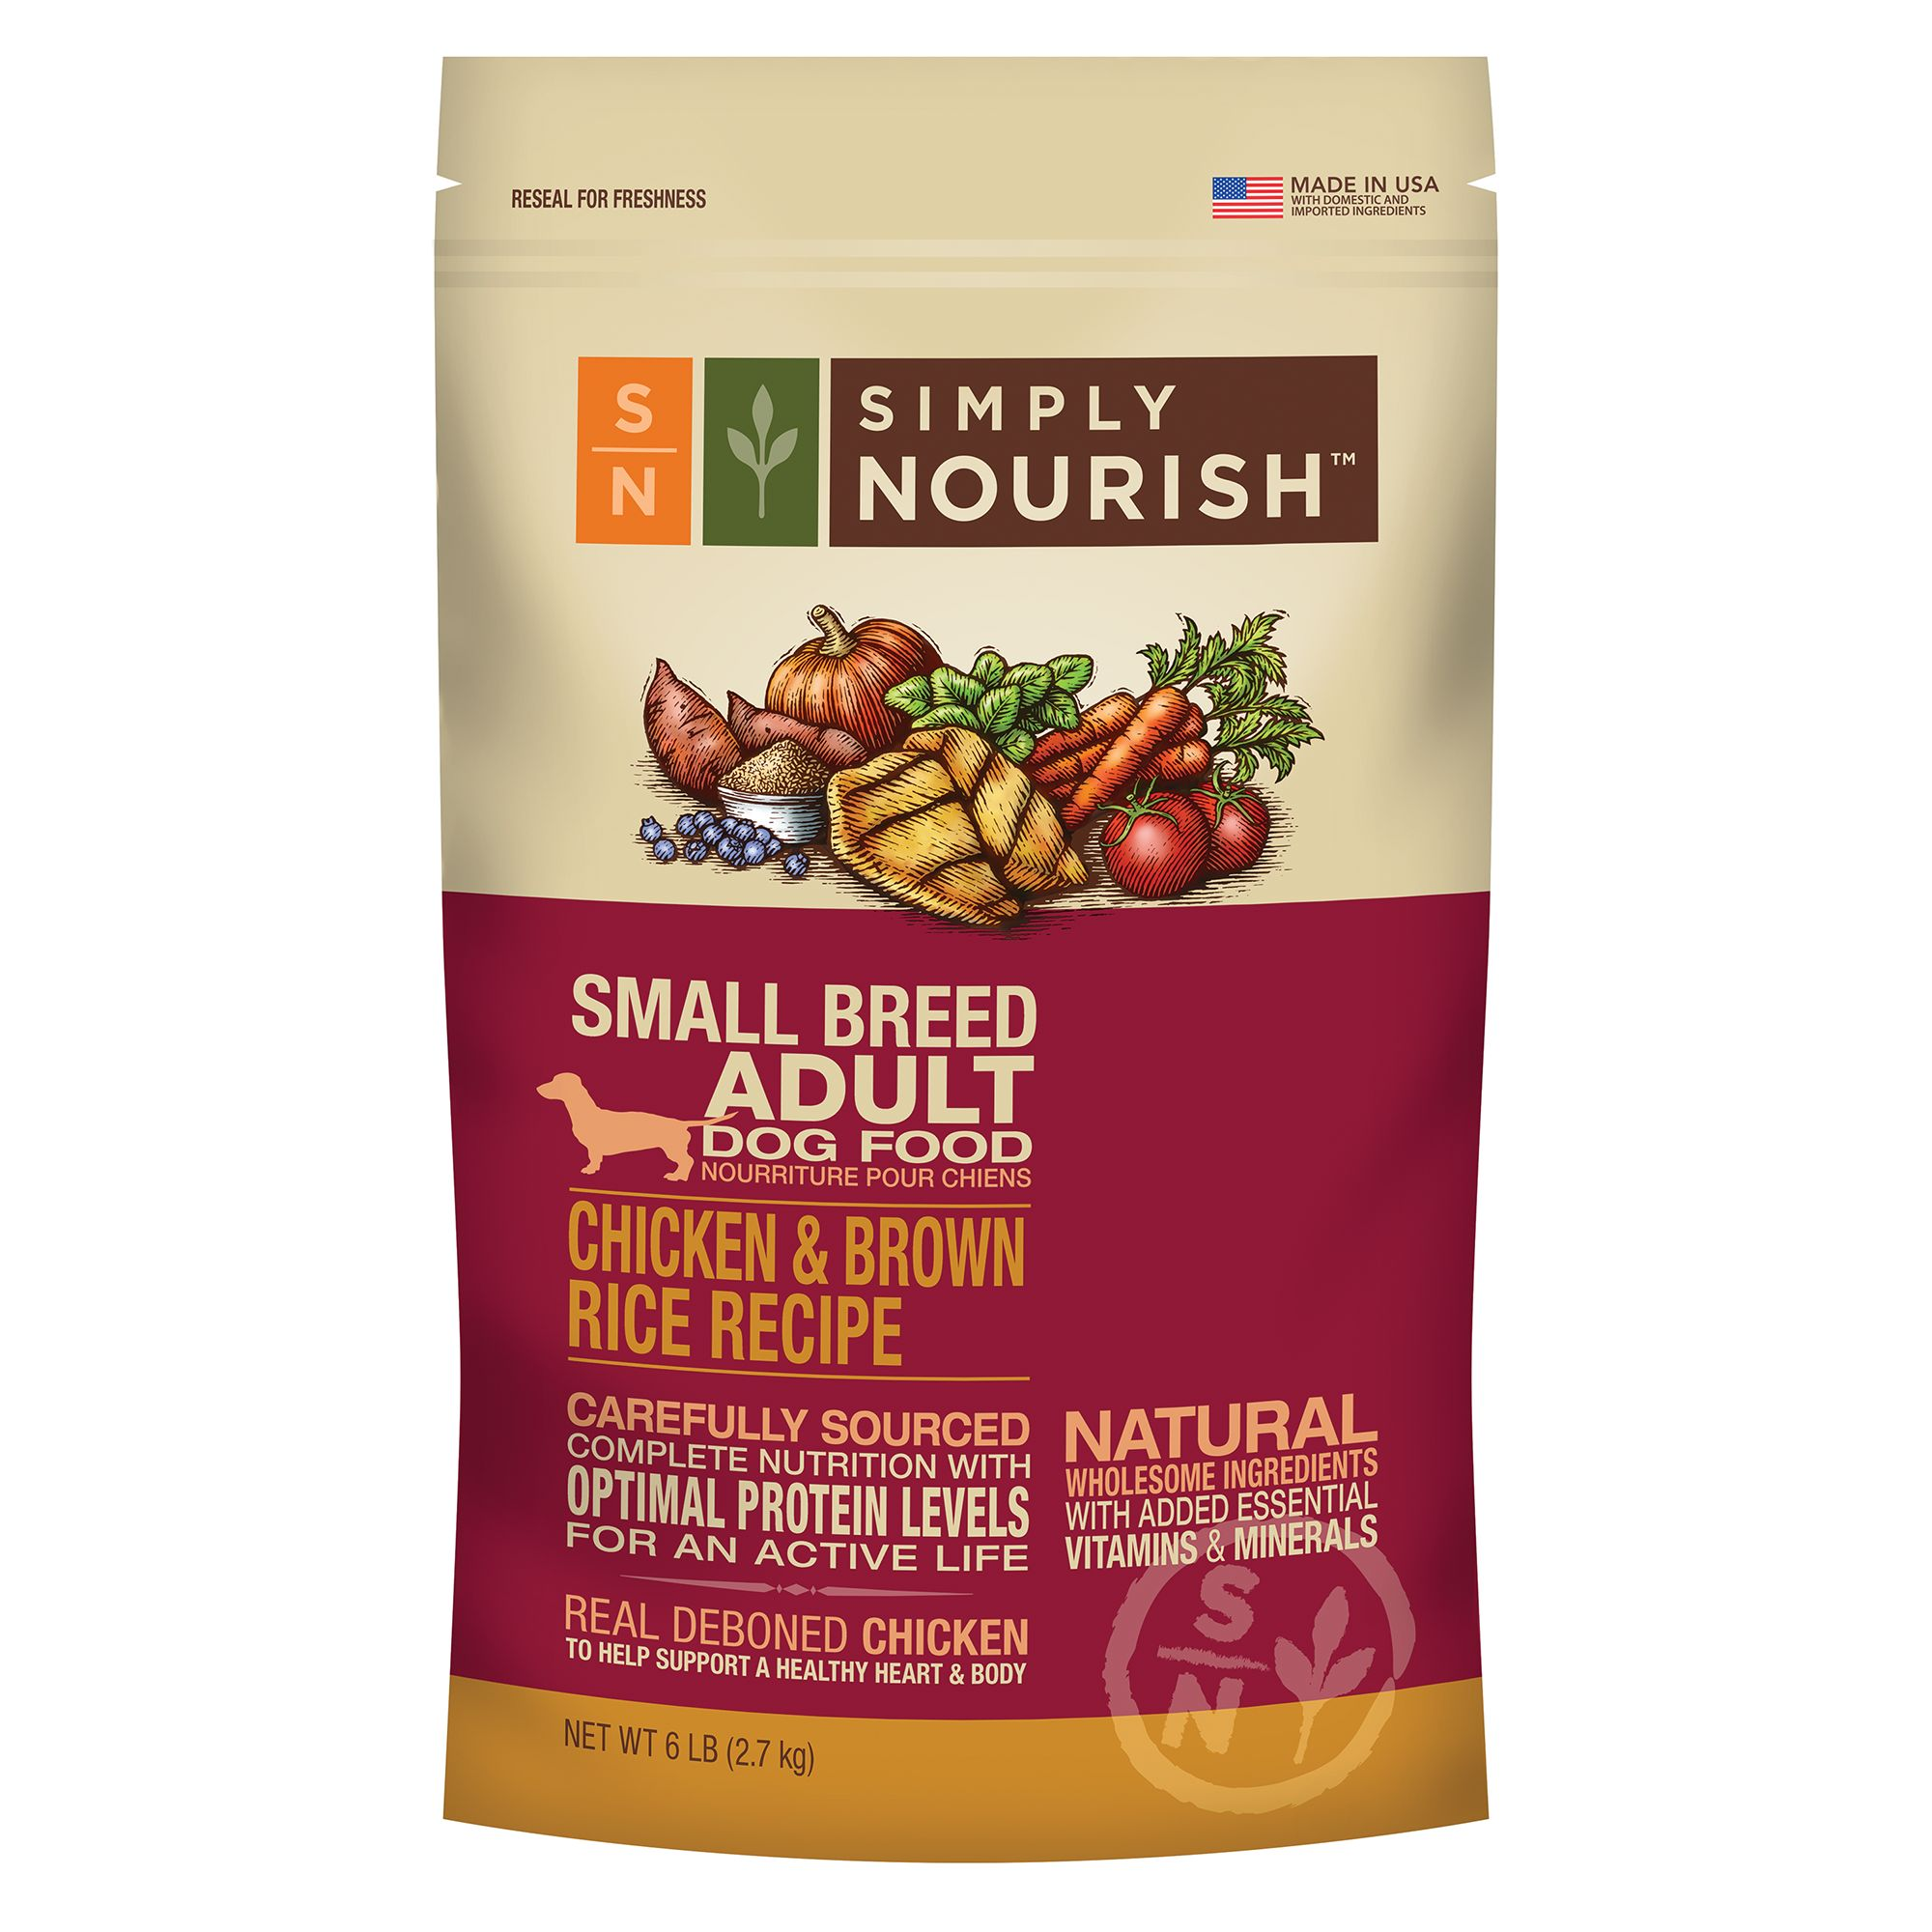 Simply Nourish Small Breed Adult Dog Food Natural Chicken Brown Rice